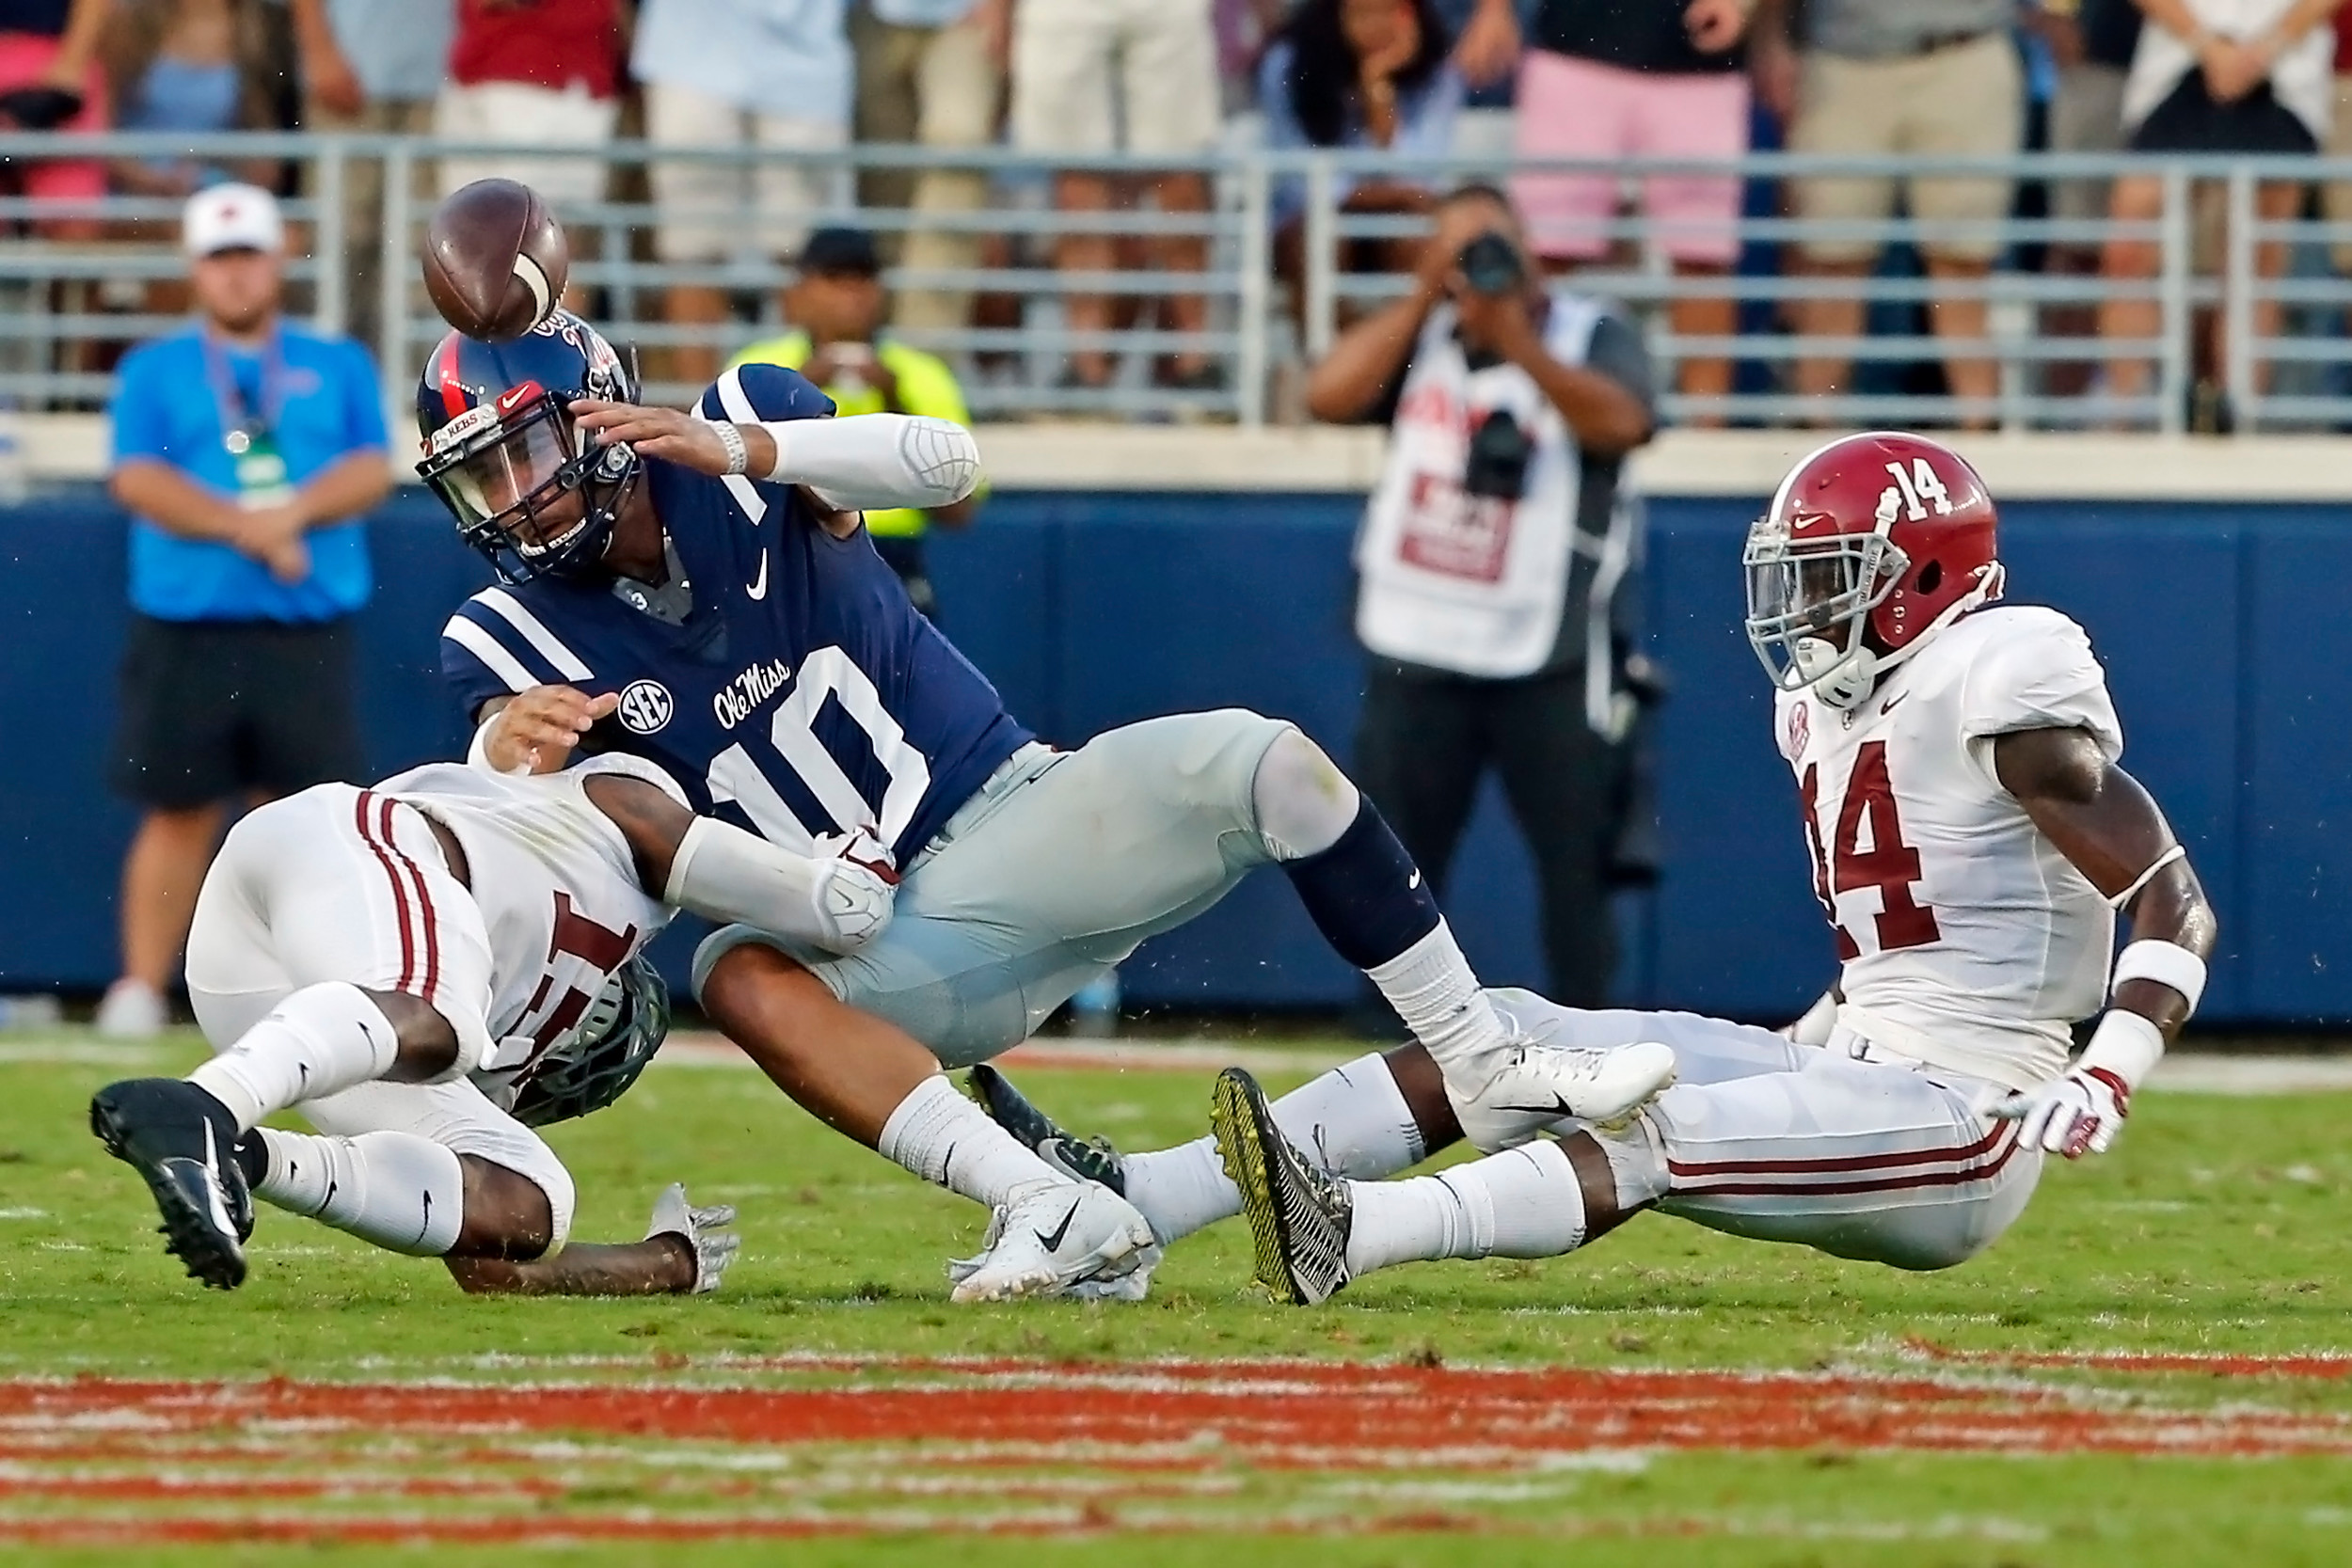 Mississippi Rebels quarterback Jordan Ta'amu (10) coughs up the ball after being hit hard by Alabama Crimson Tide defensive back Xavier McKinney (15) during the game between the University of Alabama and Ole Miss at Vaught-Hemingway Stadium. Jason Clark / Daily Mountain Eagle